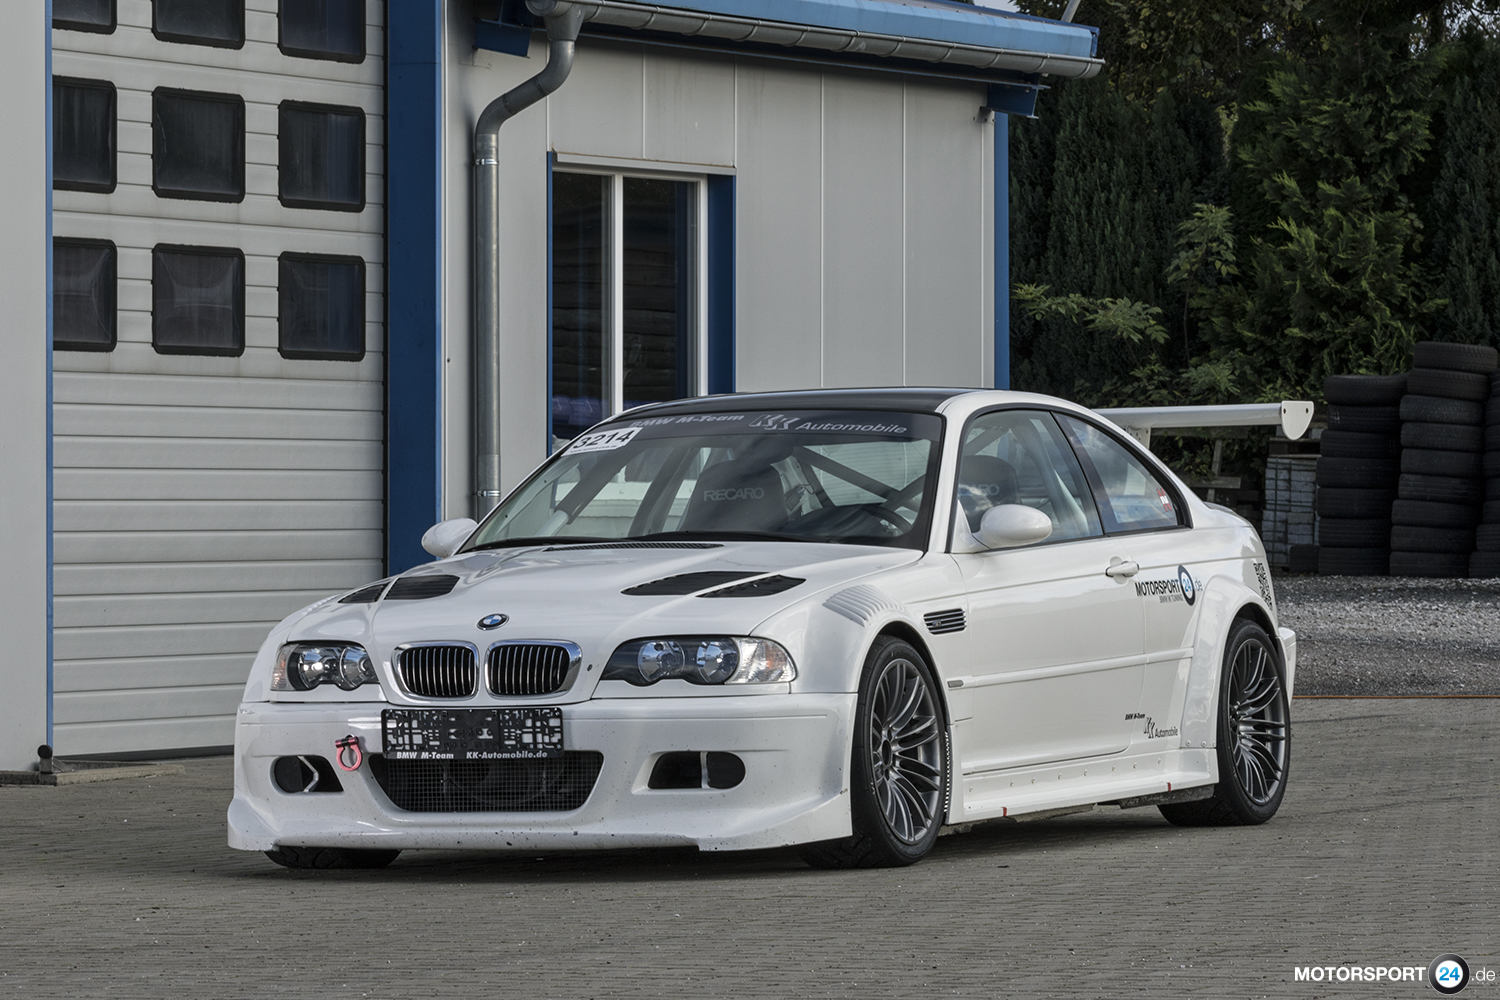 sold bmw m3 e46 gtr mit stra enzulassung zu verkaufen bmw m tuning teile f r m3 m4 1er 2er. Black Bedroom Furniture Sets. Home Design Ideas